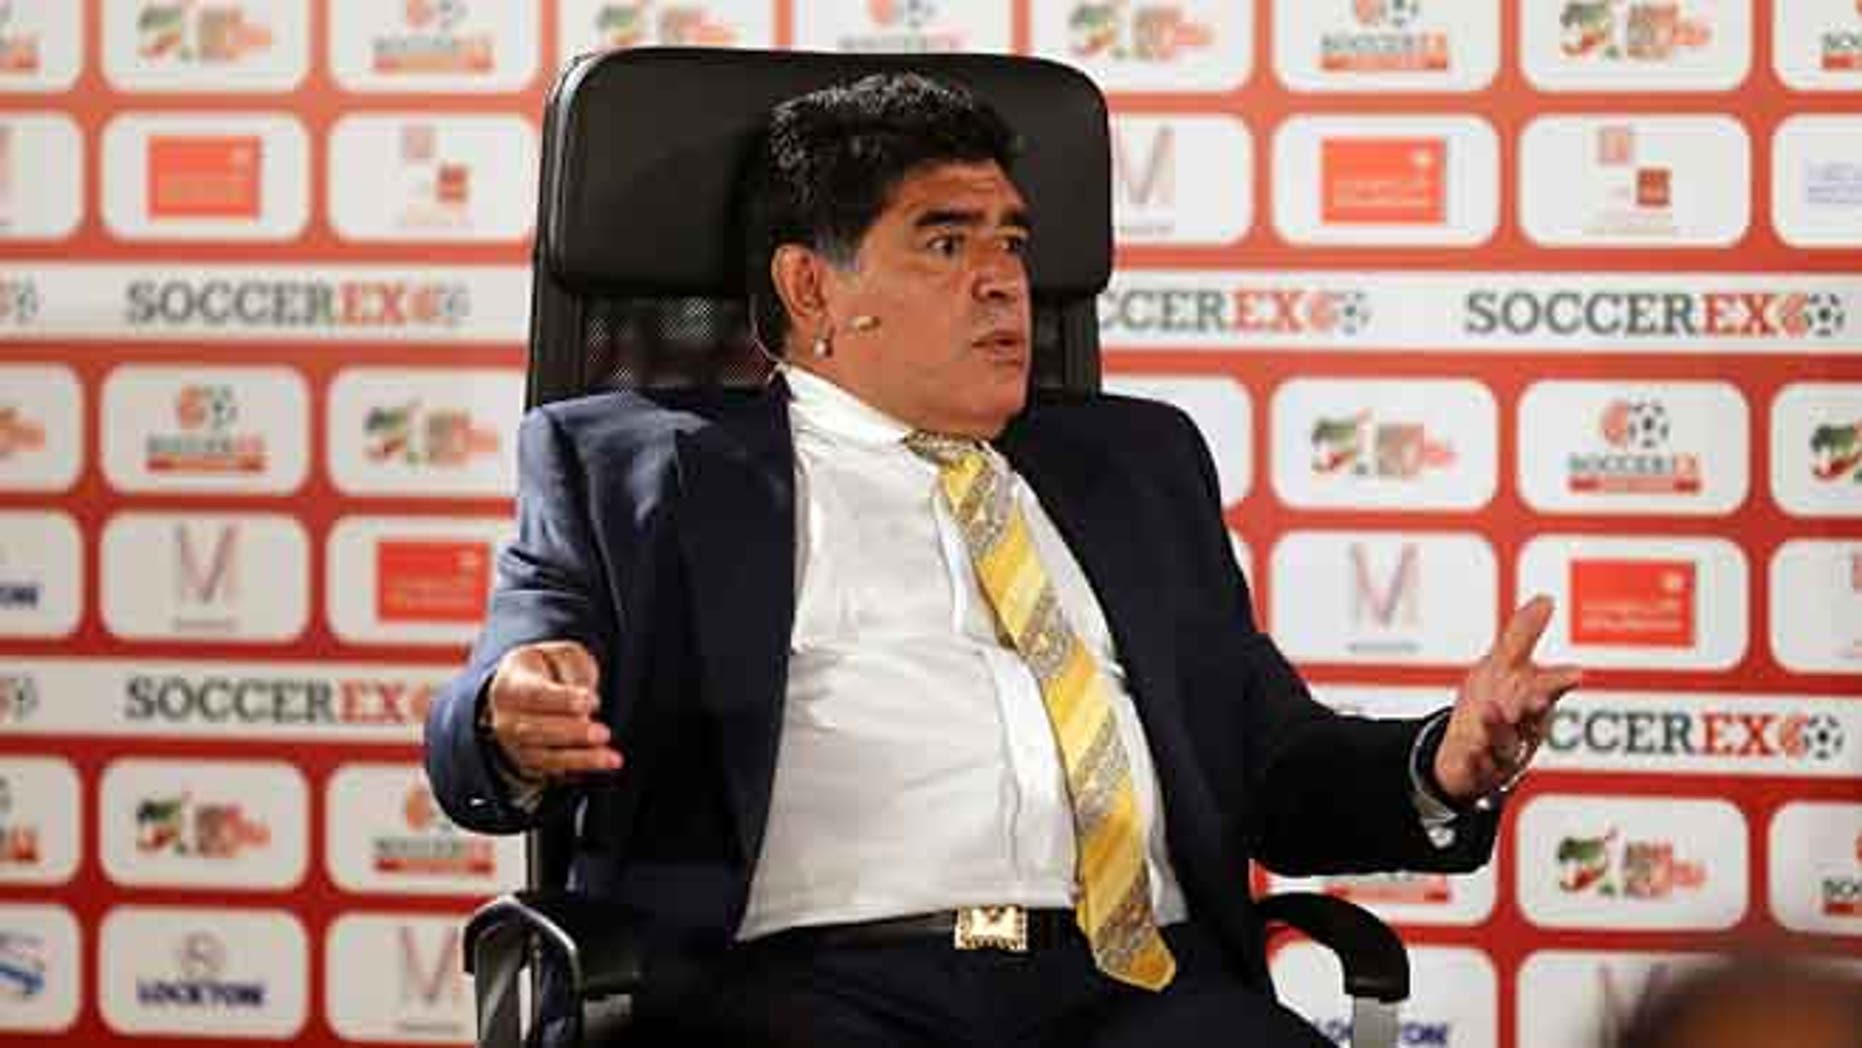 Maradona on May 4, 2015 at the King Hussein convention centre, Dead Sea, Jordan.